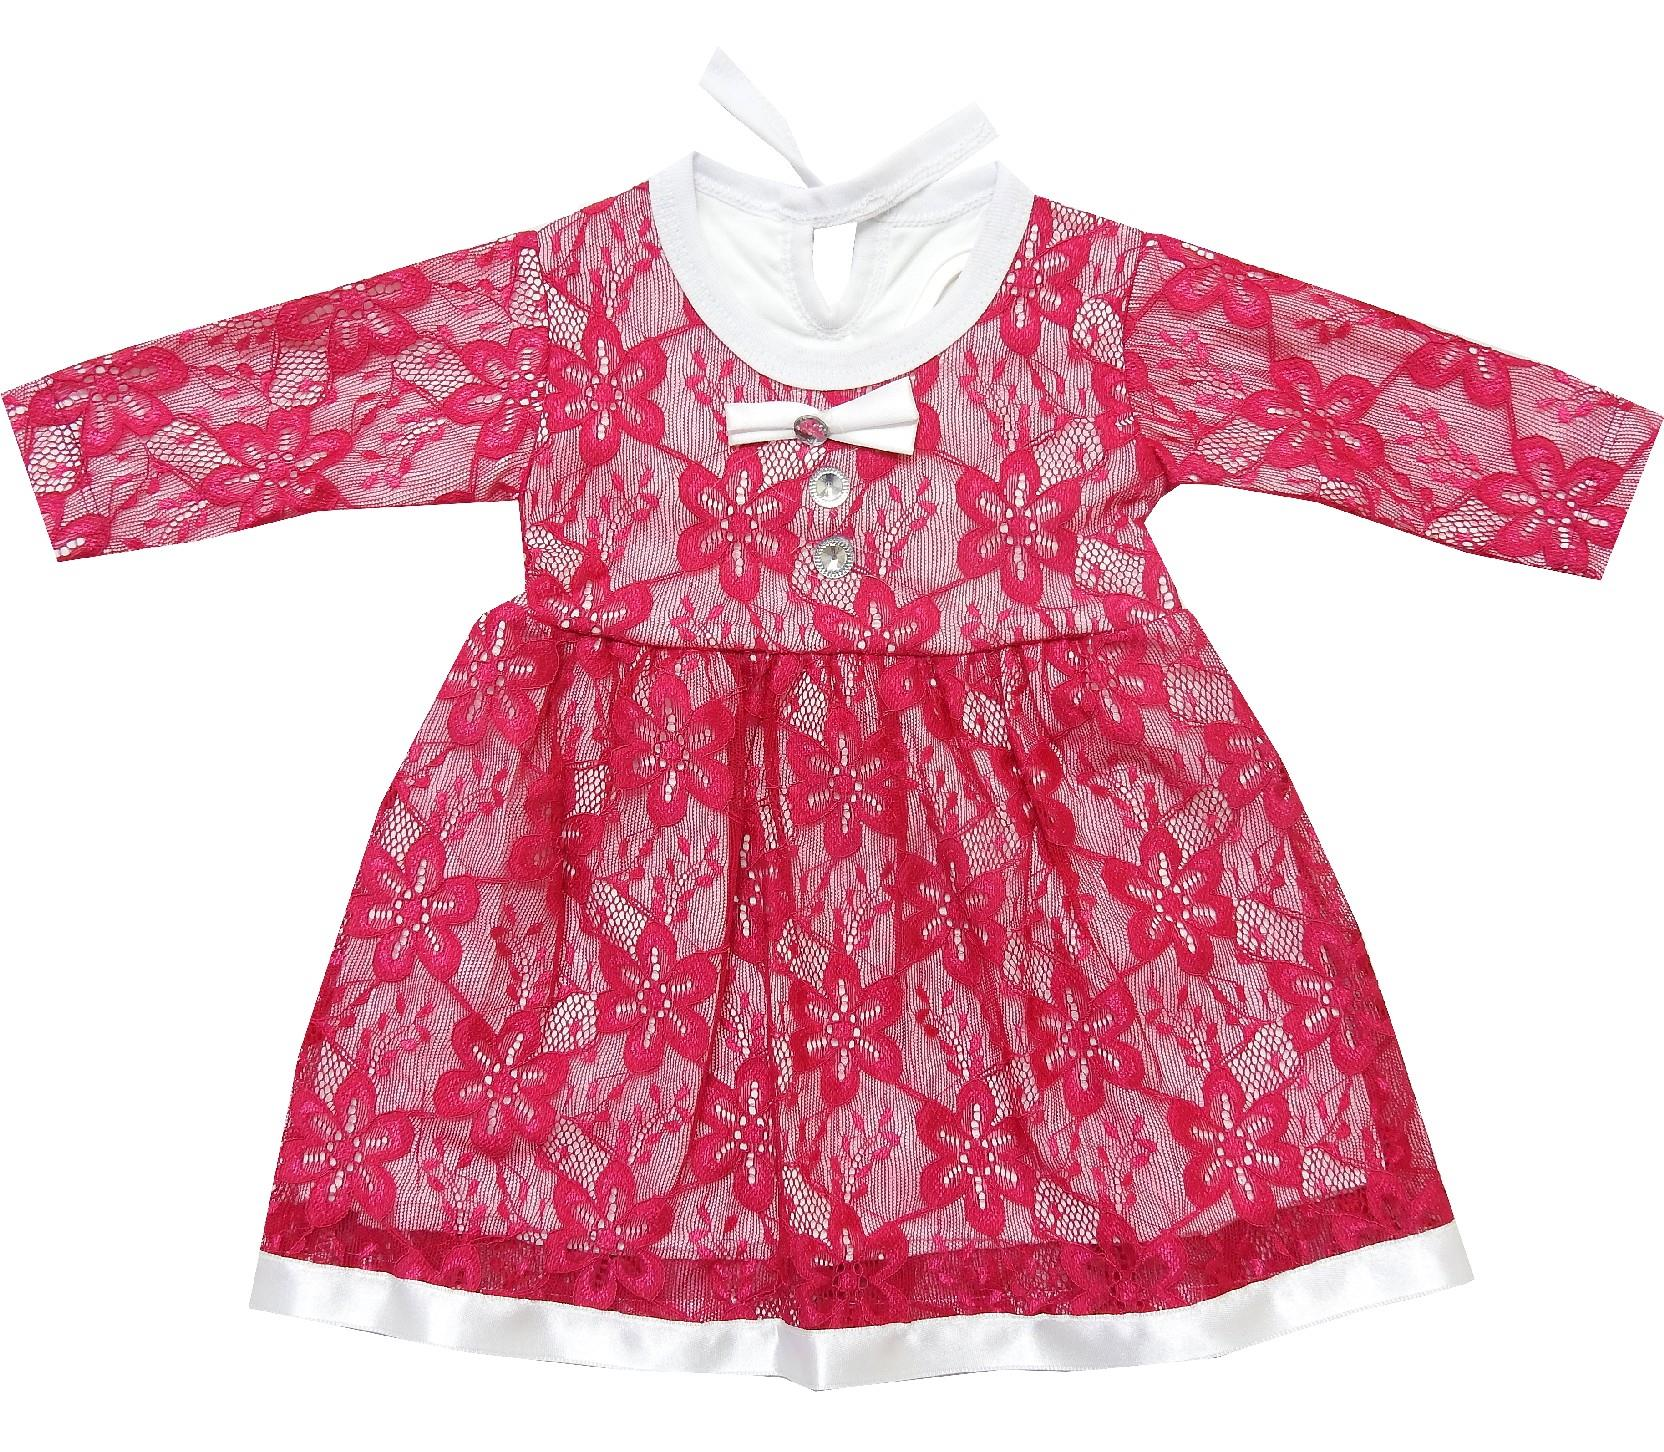 Wholesale lace fabric embroidery dresses for baby girl (3-6-9 month)